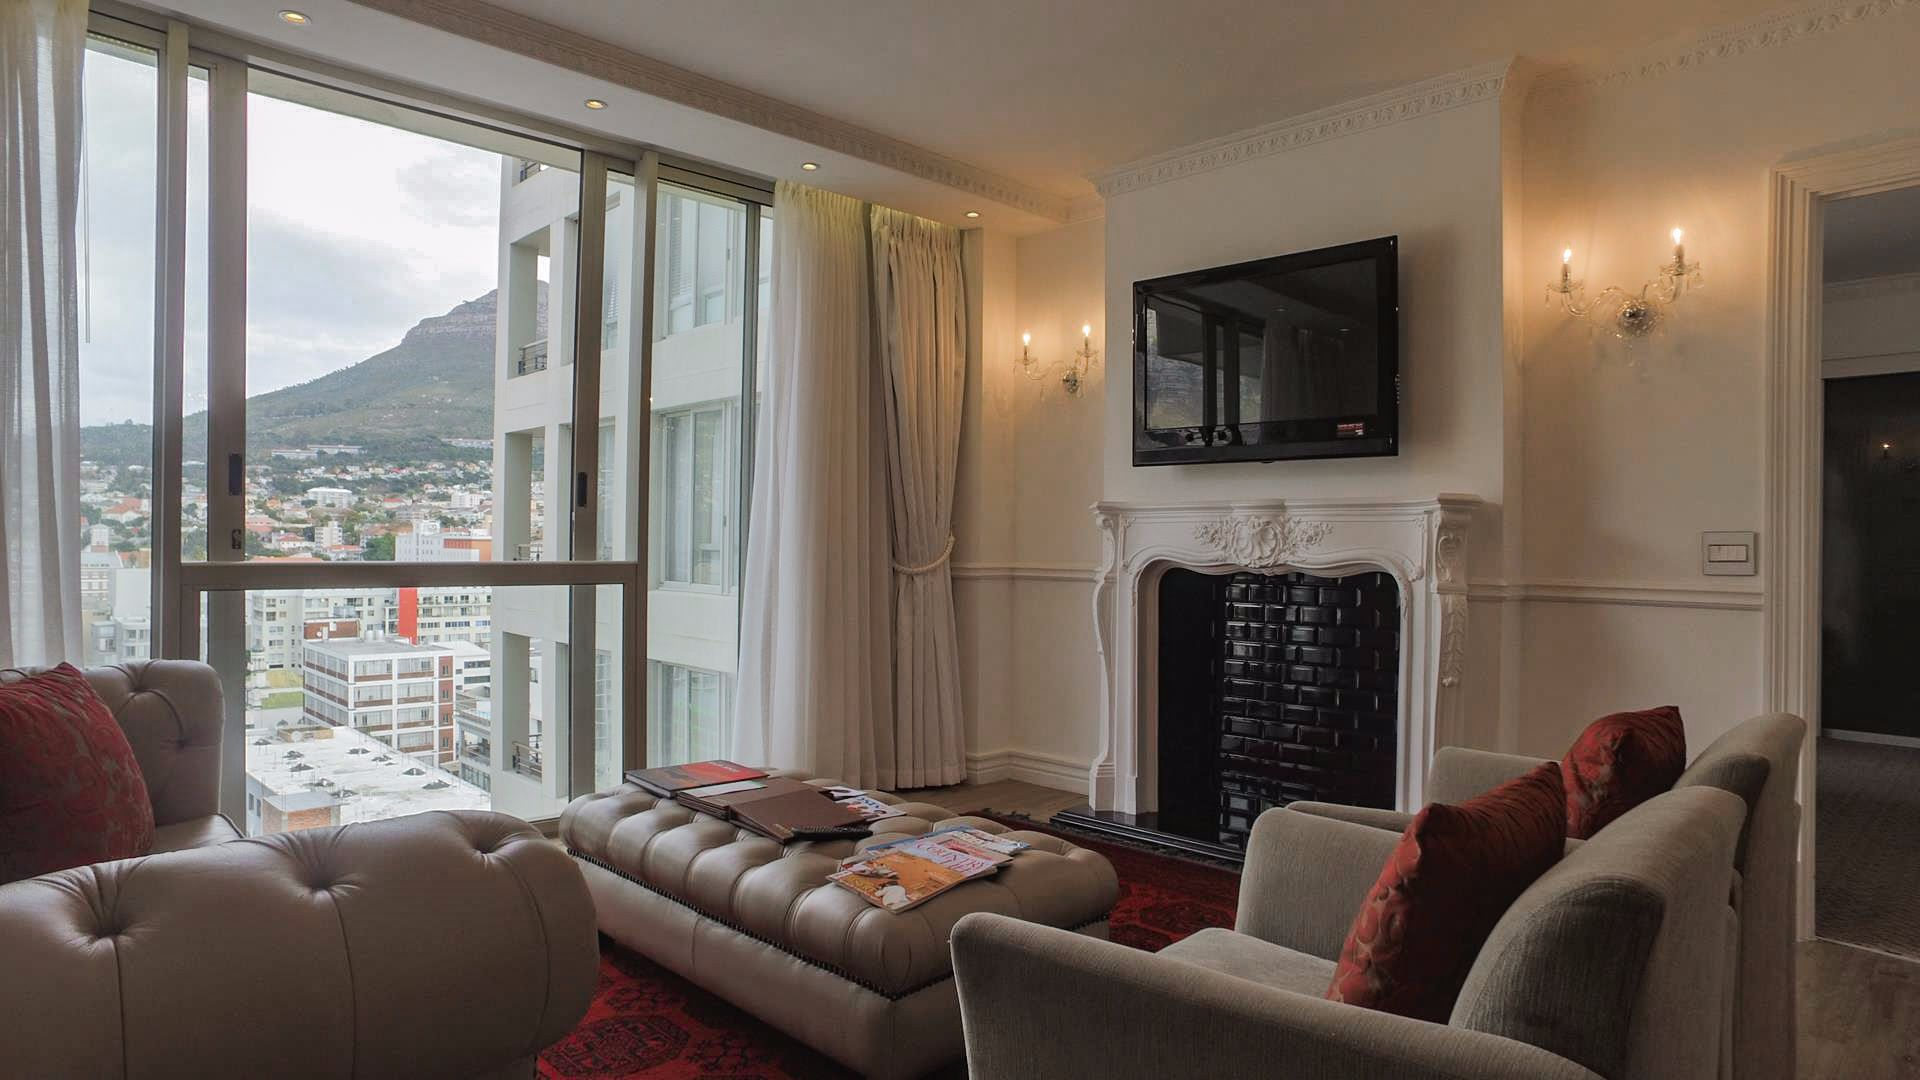 Apartment For Sale In Cape Town City Centre 2 Bedroom 13503466 2 20